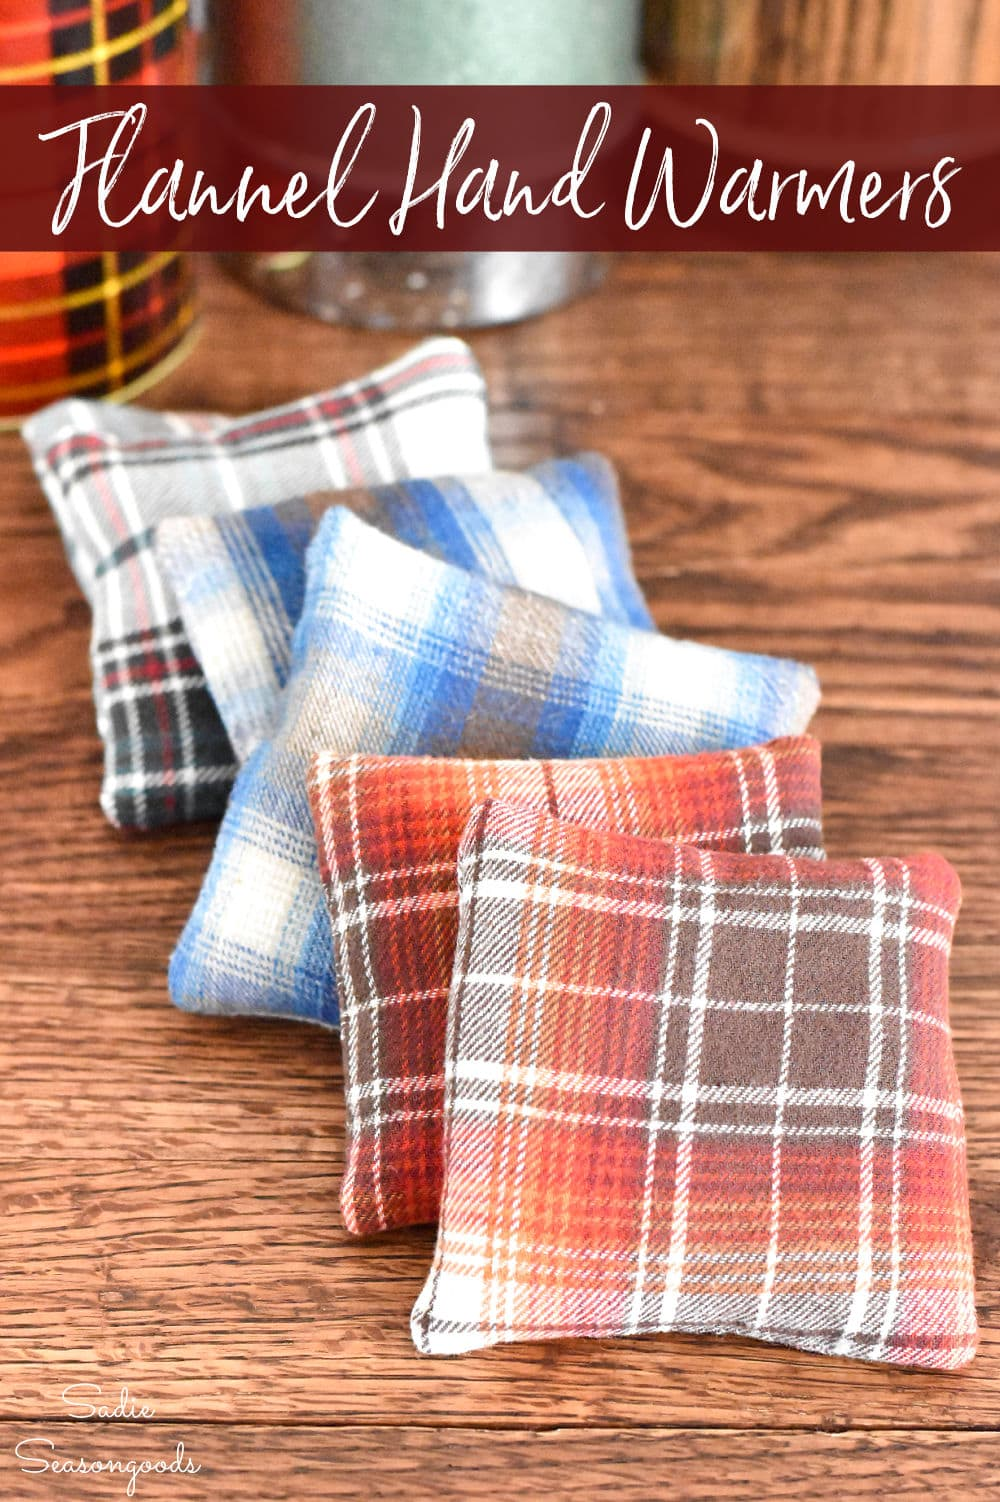 DIY hand warmers from flannel shirts